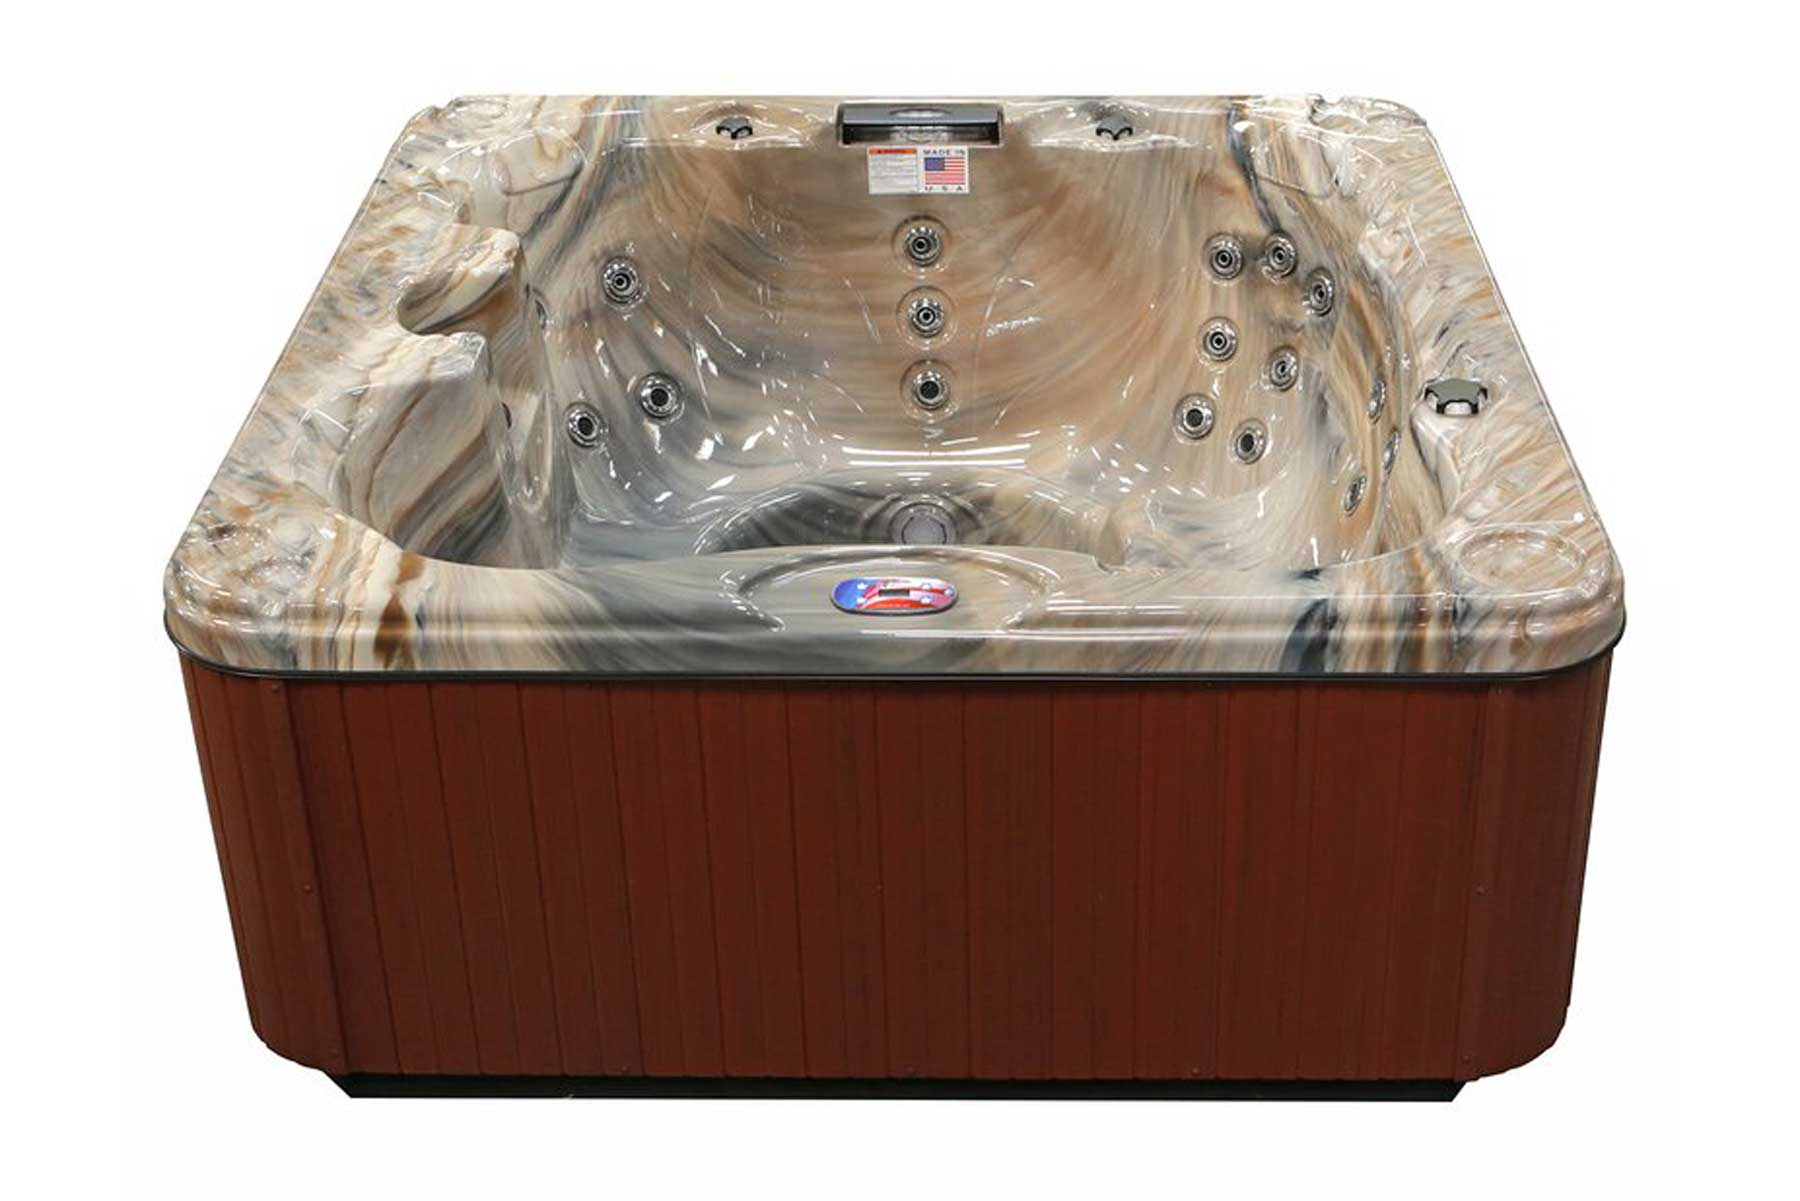 7-Person 30-Jet Hot Tub with Backlit LED Waterfall